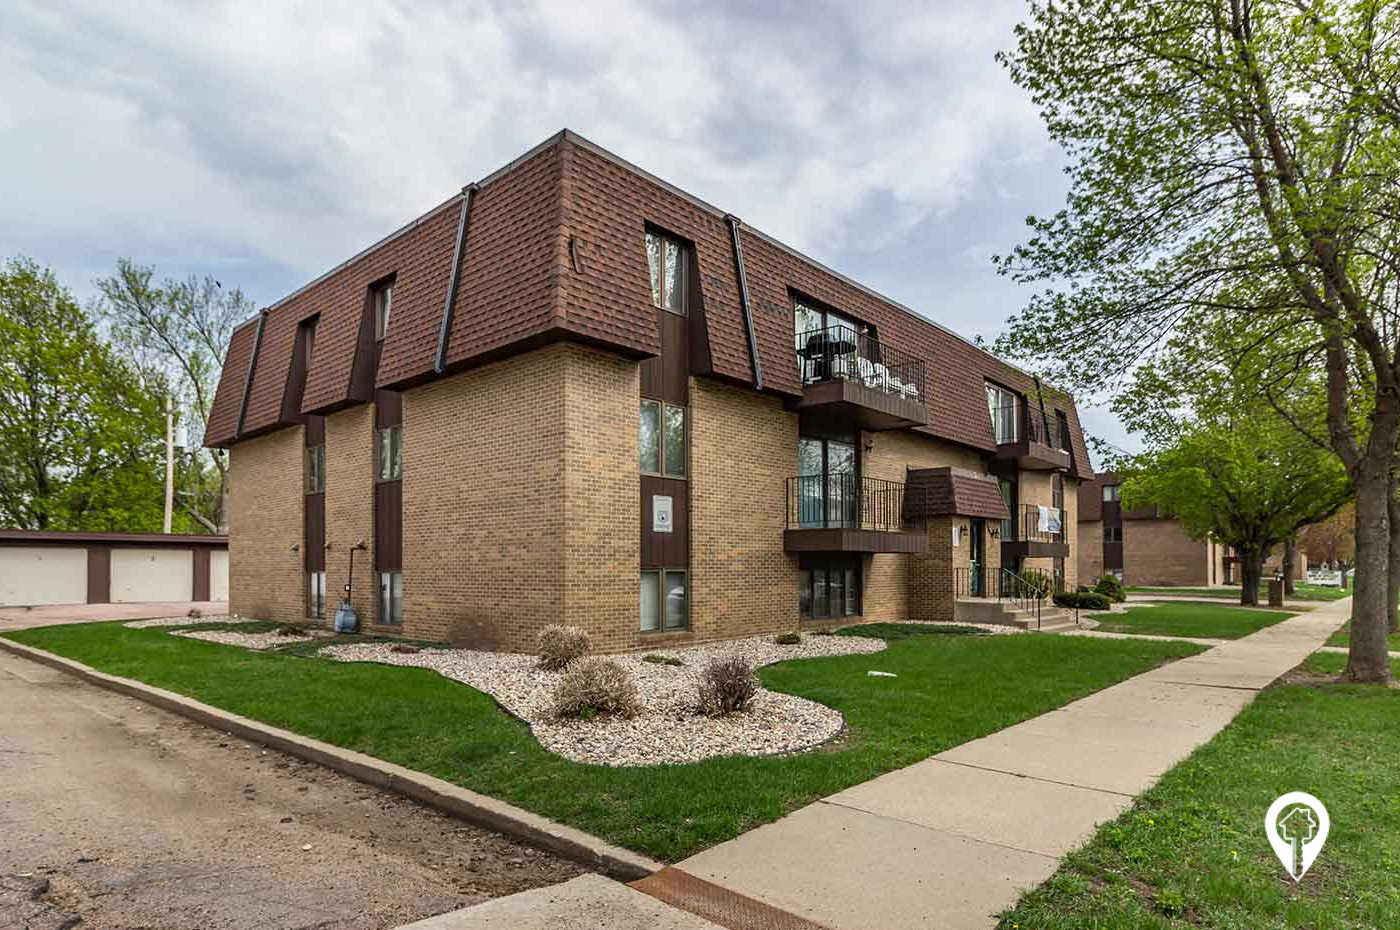 J & M Real Estate Group - Willow Crossing Apartments